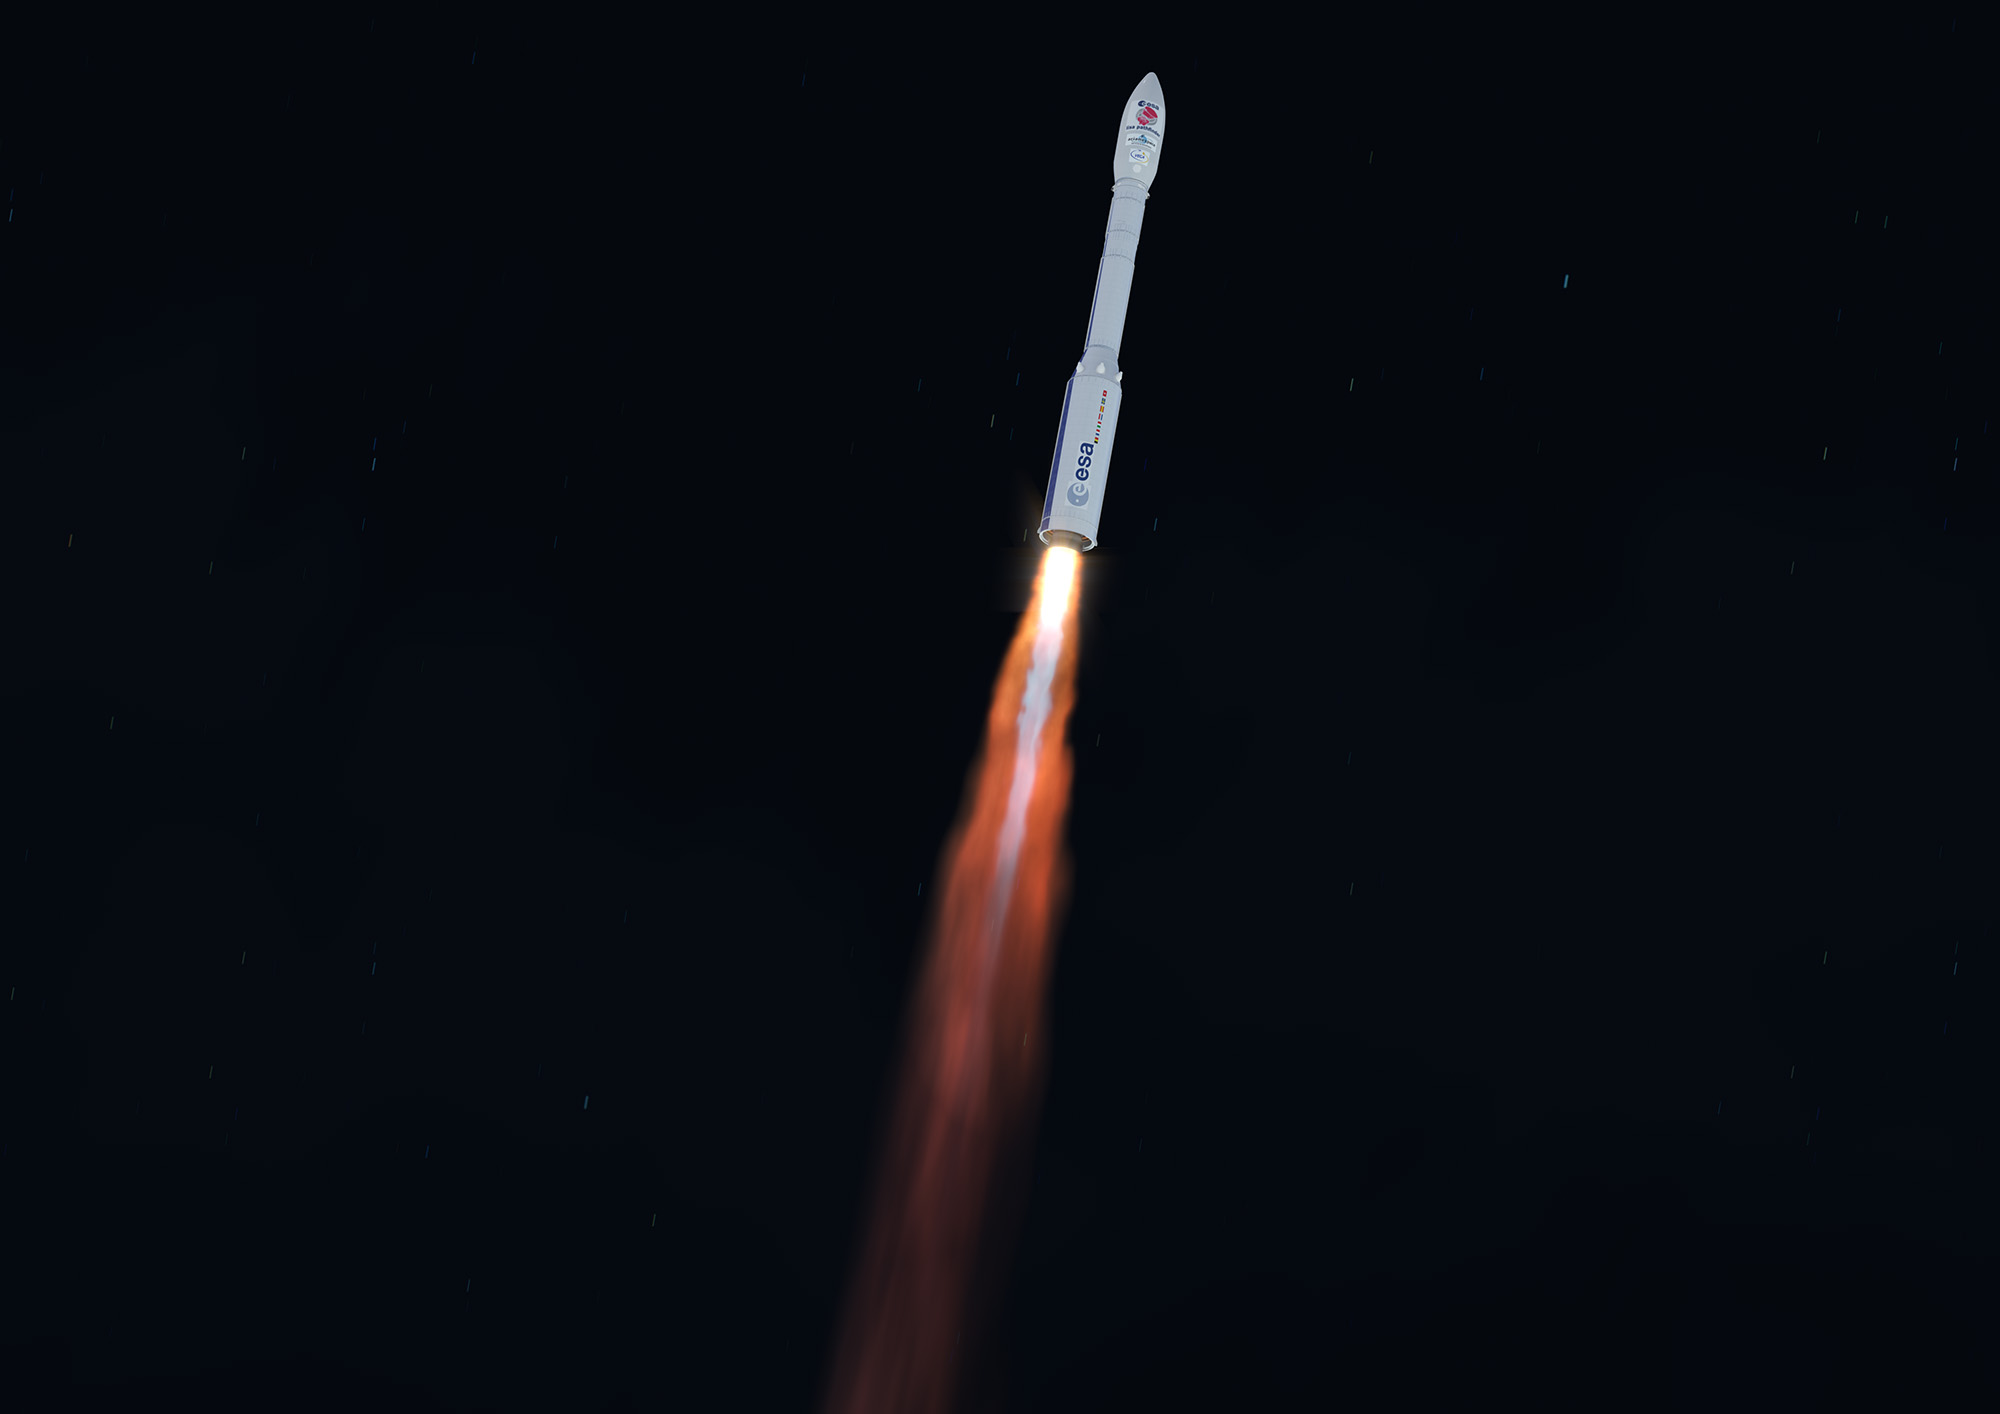 The Vega rocket's first stage P80 solid rocket motor ignites and powers the 98-foot-tall (30-meter) booster off the launch pad 0.3 seconds later. The P80 first stage motor generates a maximum of 683,000 pounds of thrust.